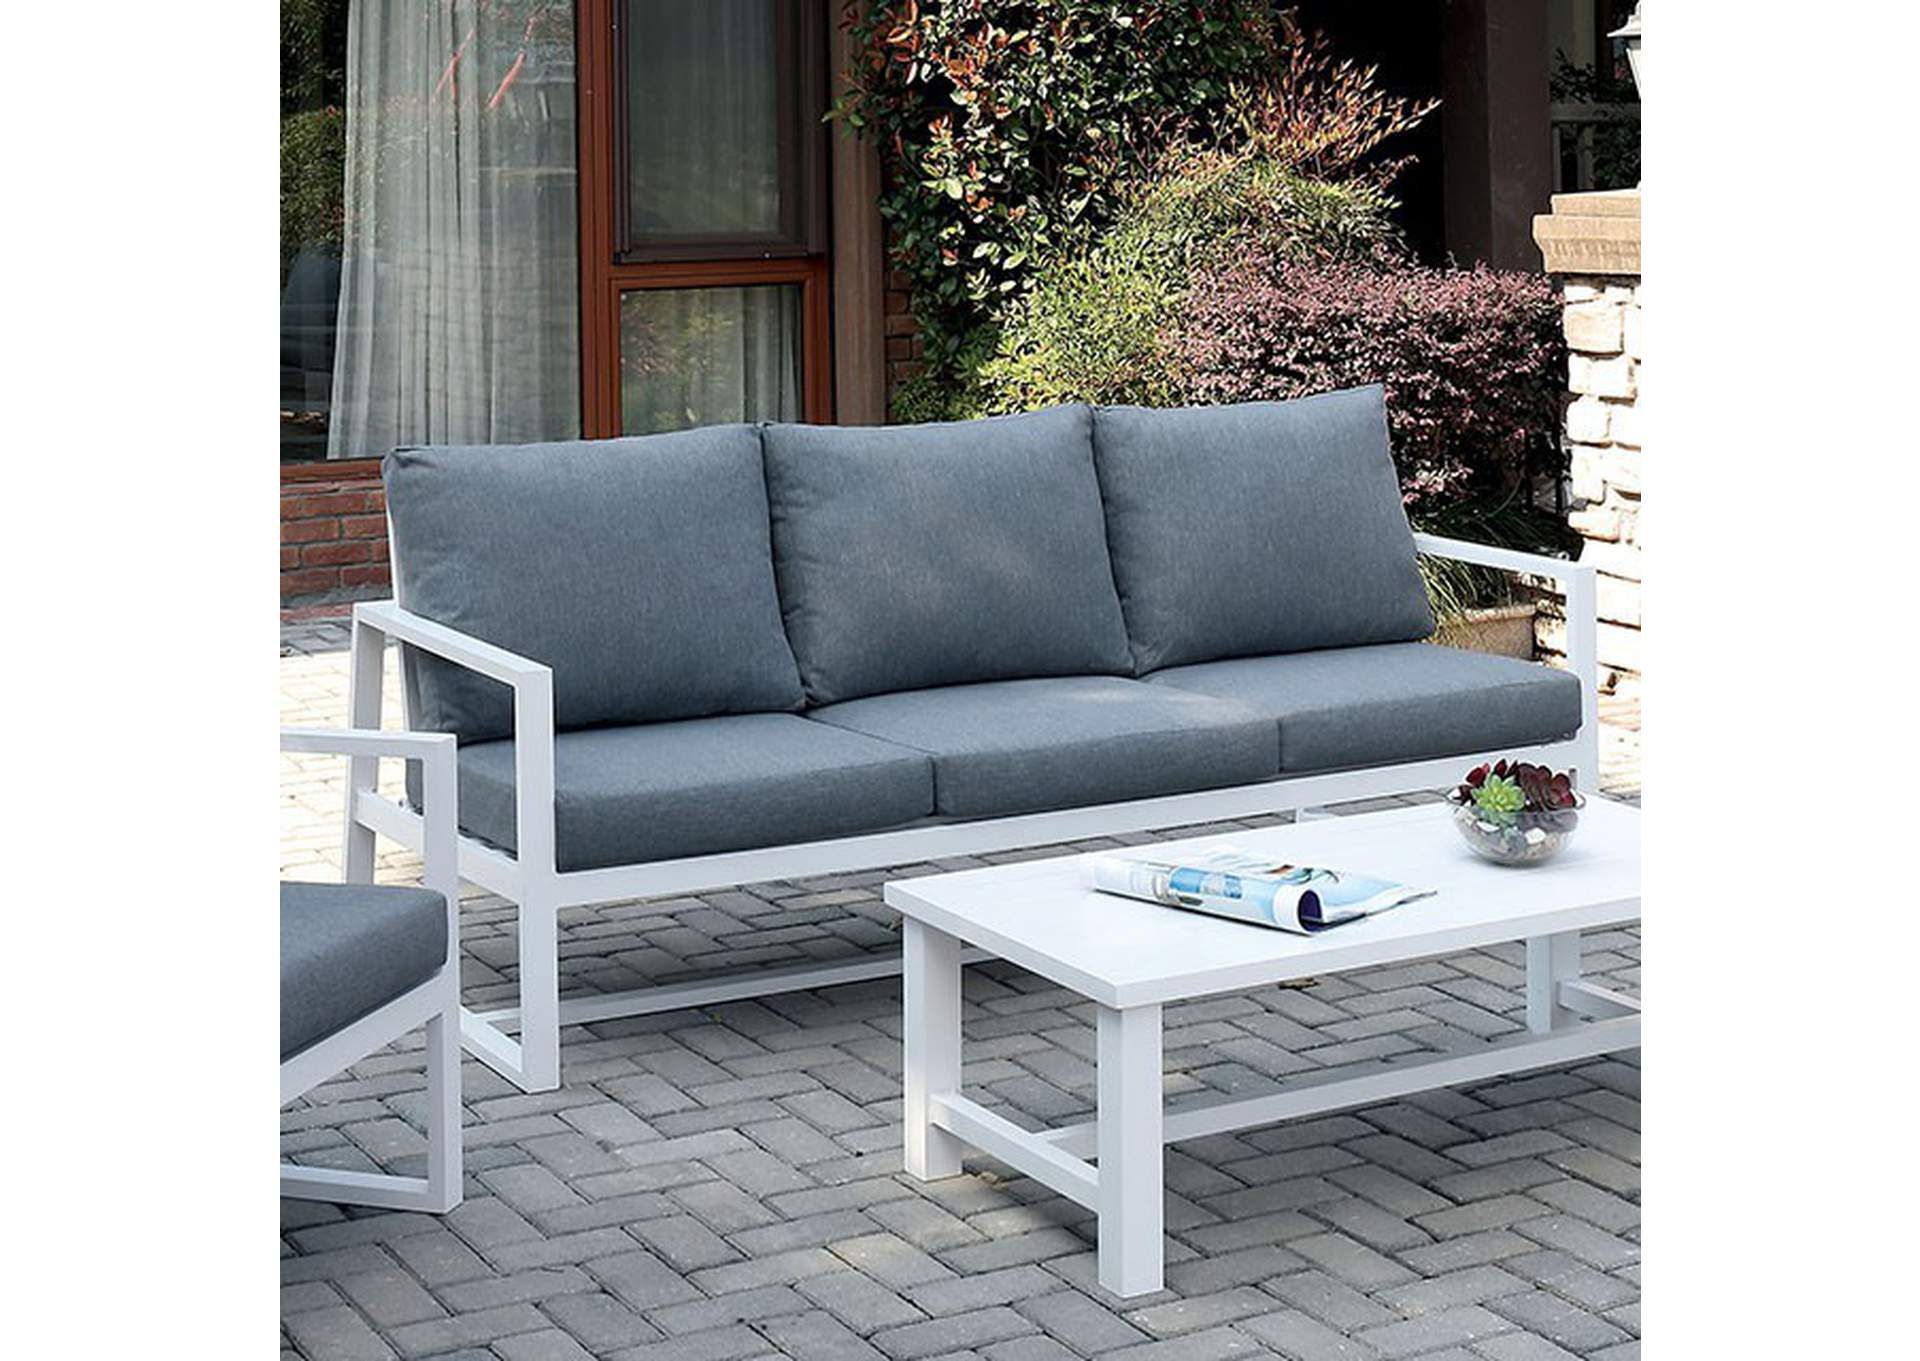 India Gray Patio Sofa,Furniture of America